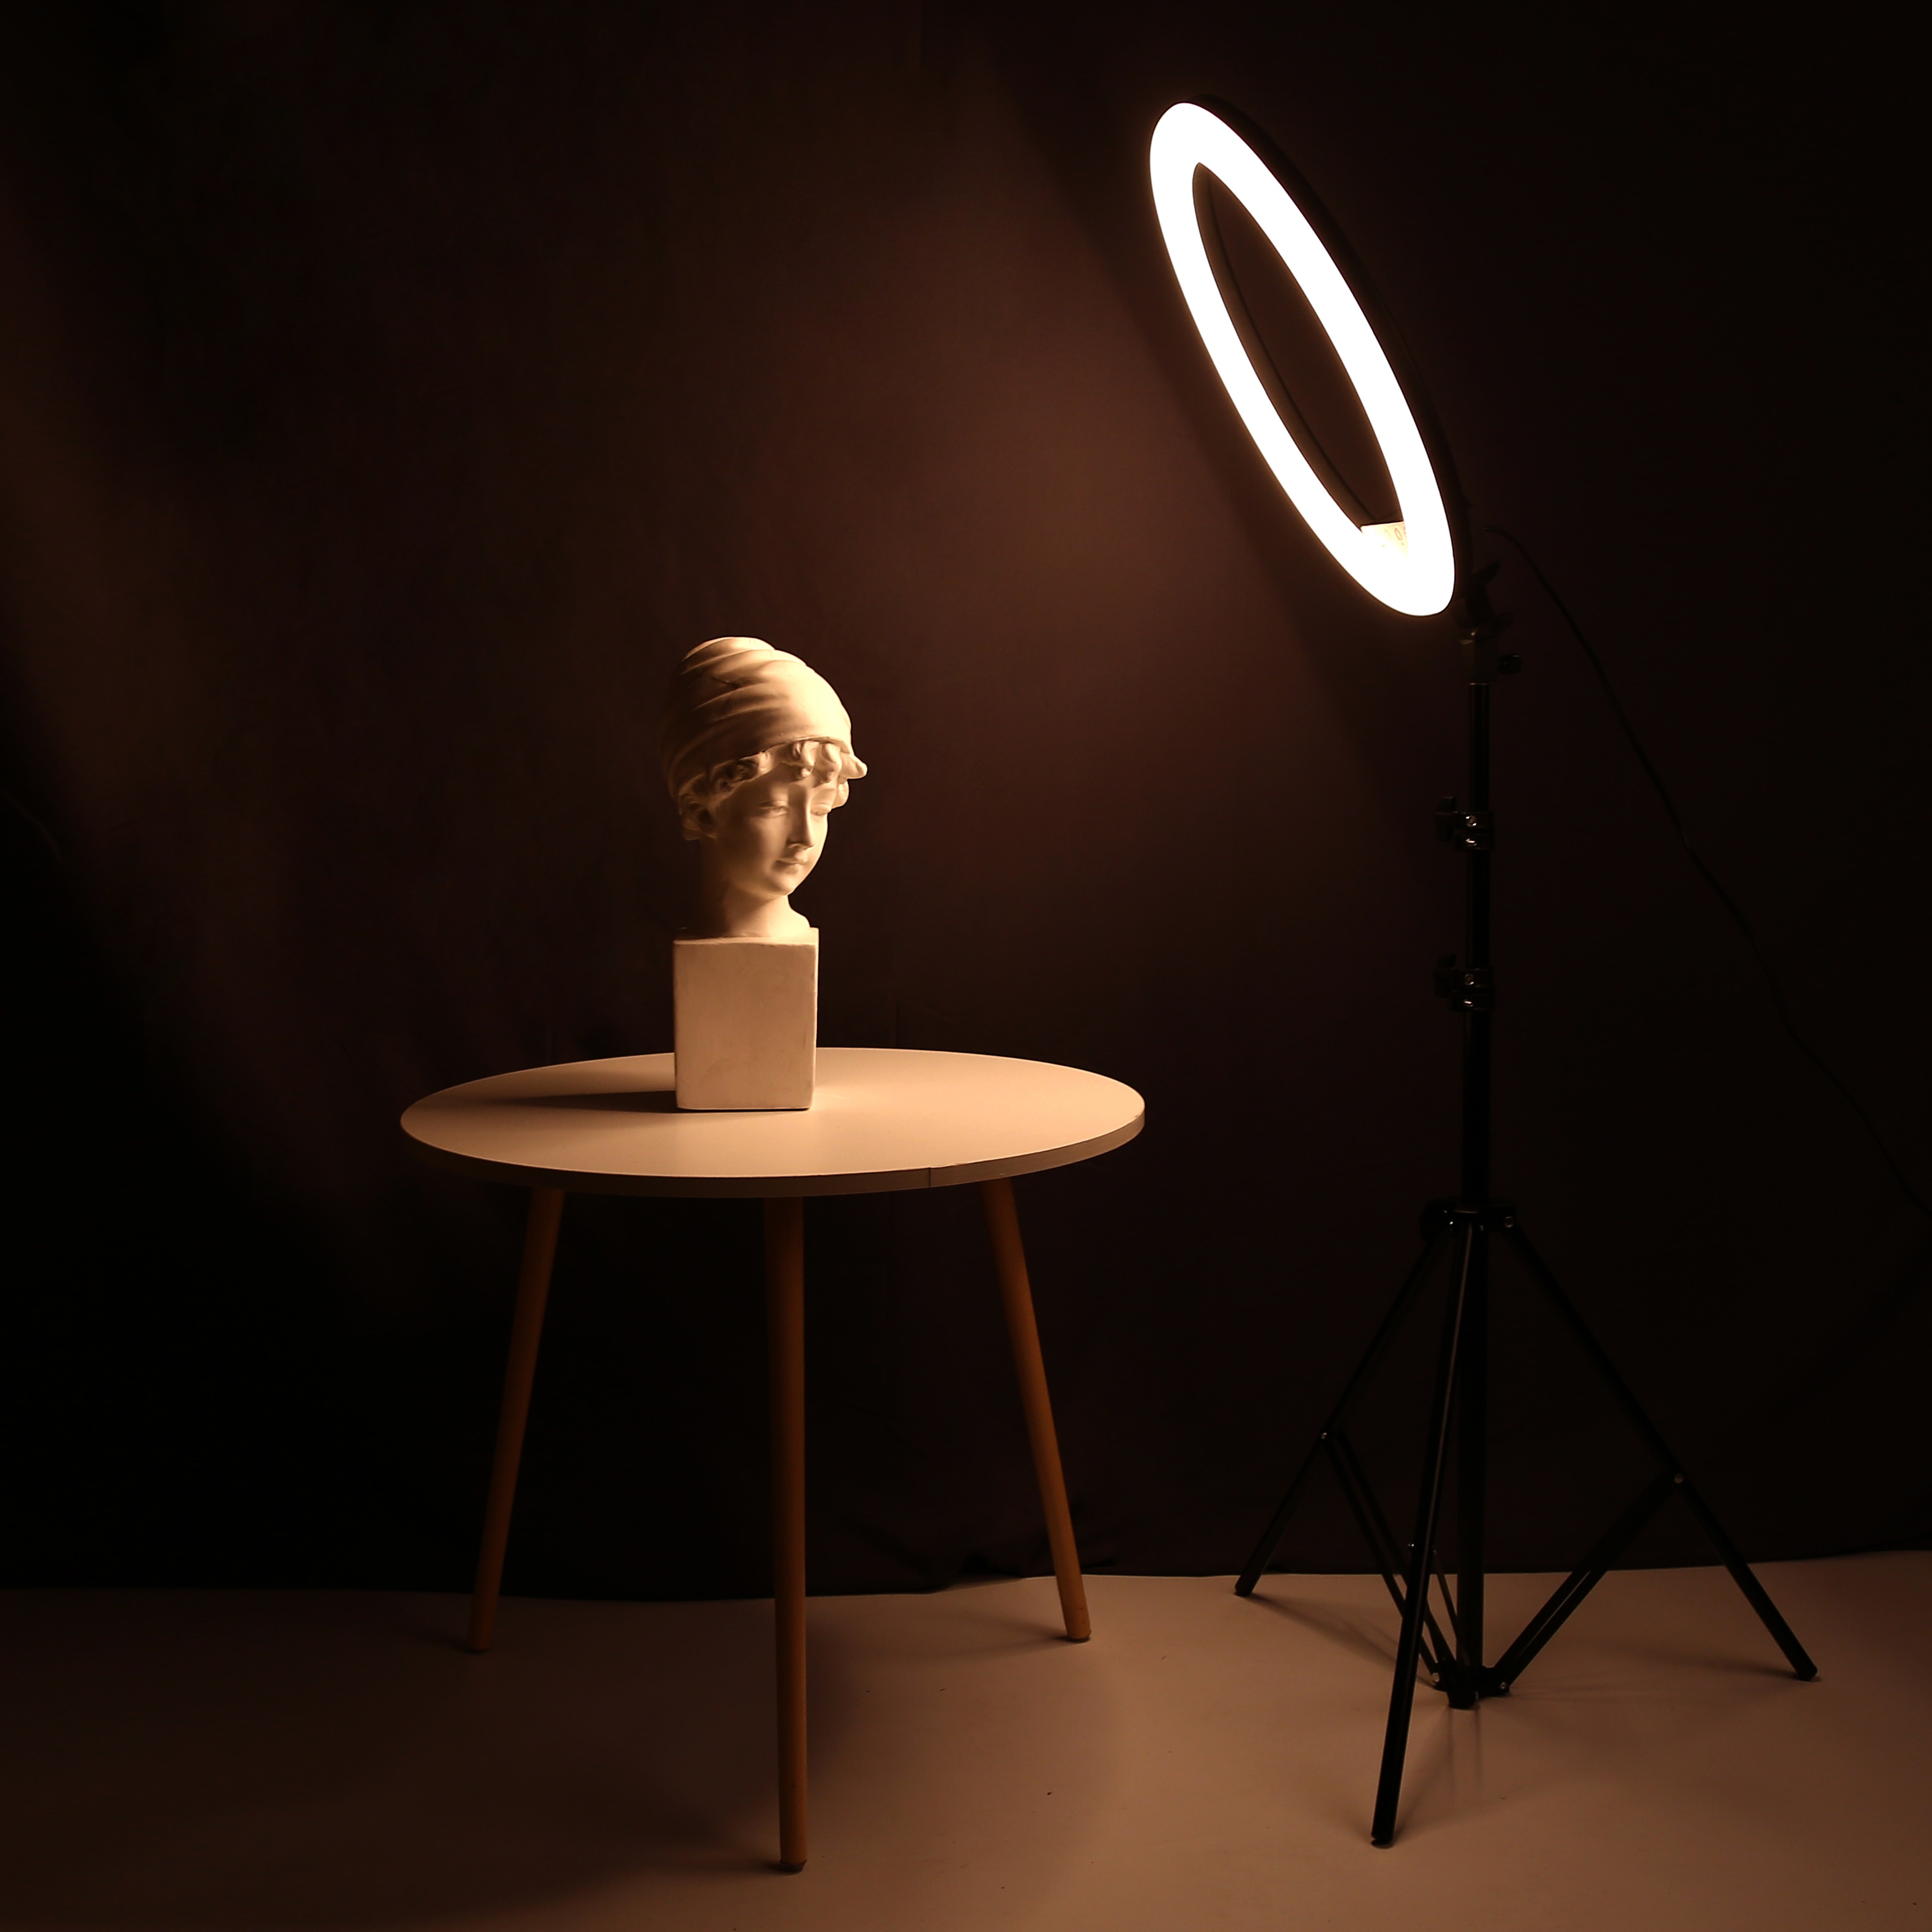 14/18inch Photo Studio lighting LED Ring Light  Large Ring Lamp With Stand Tripod for Phone Tiktok Youtube Portrait,Makeup,Video enlarge